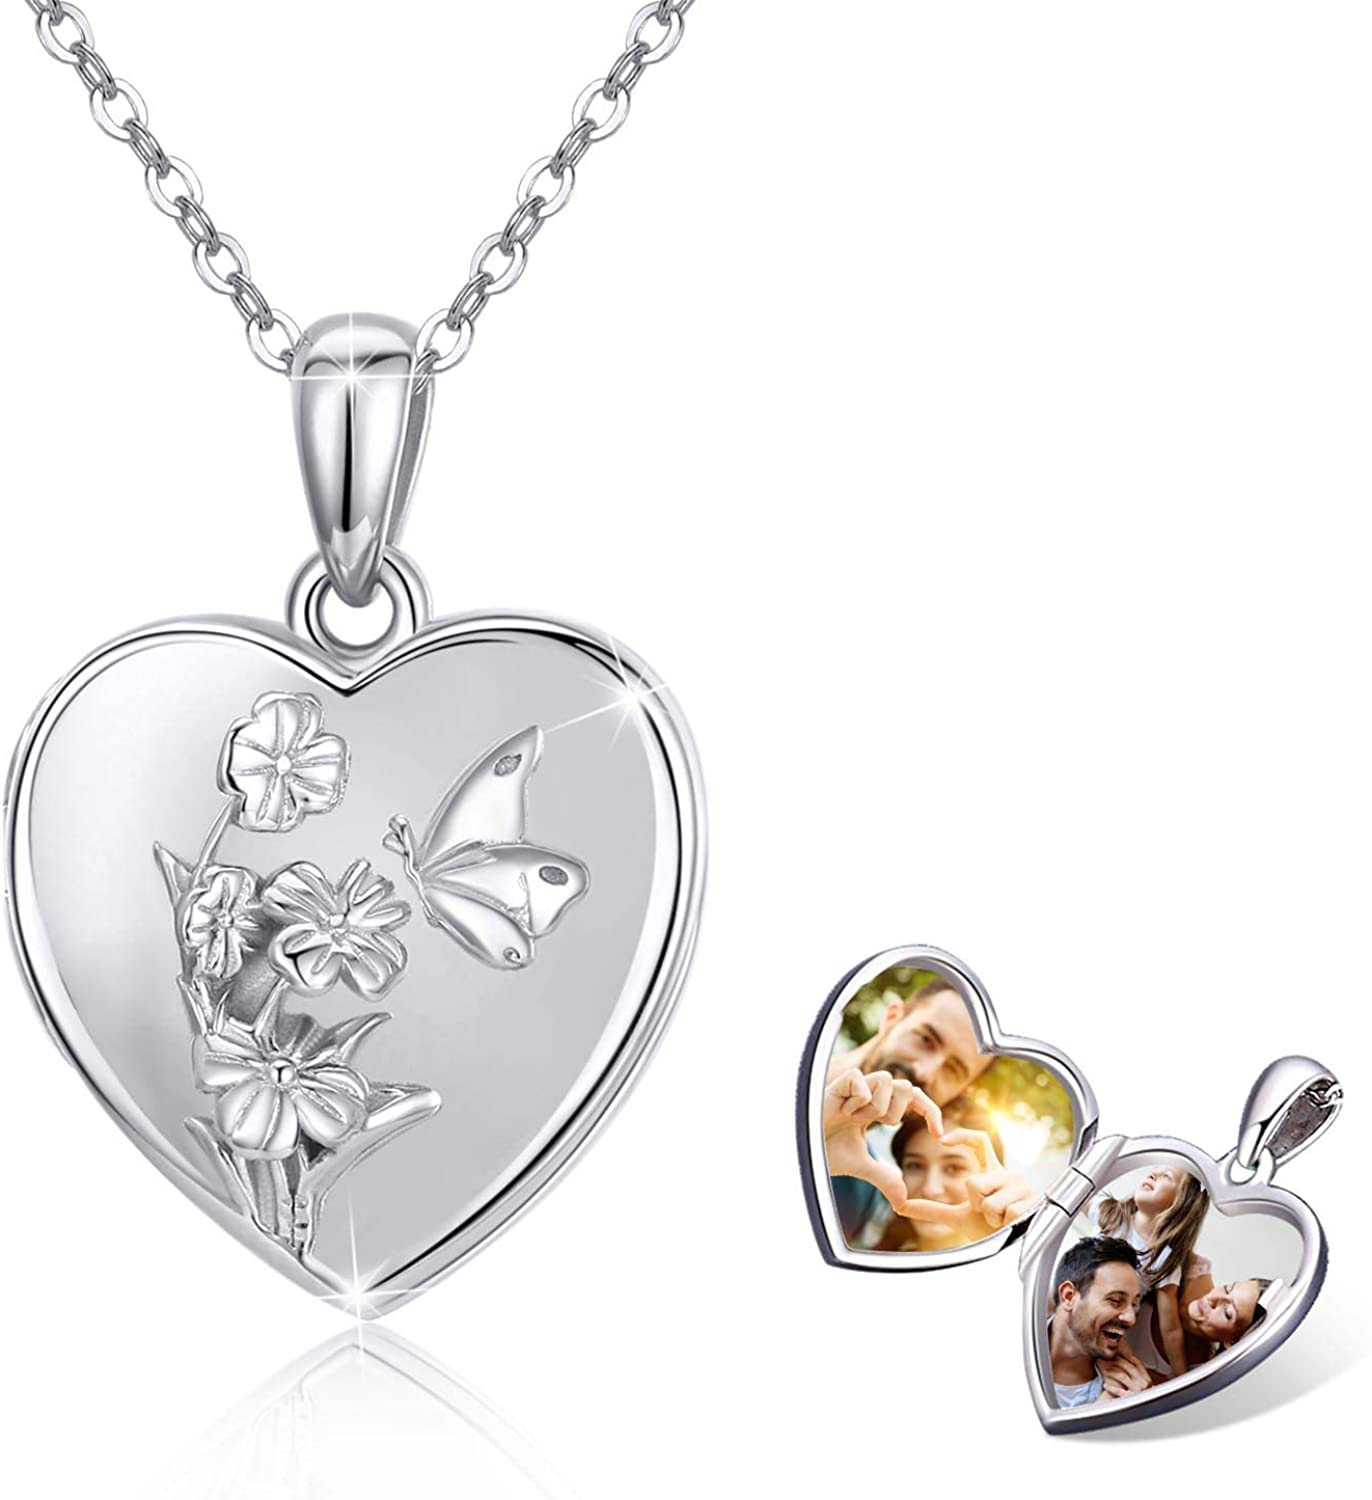 Butterfly Heart Locket Necklace That 2021 Sterling At the price Photos Hold 2 925